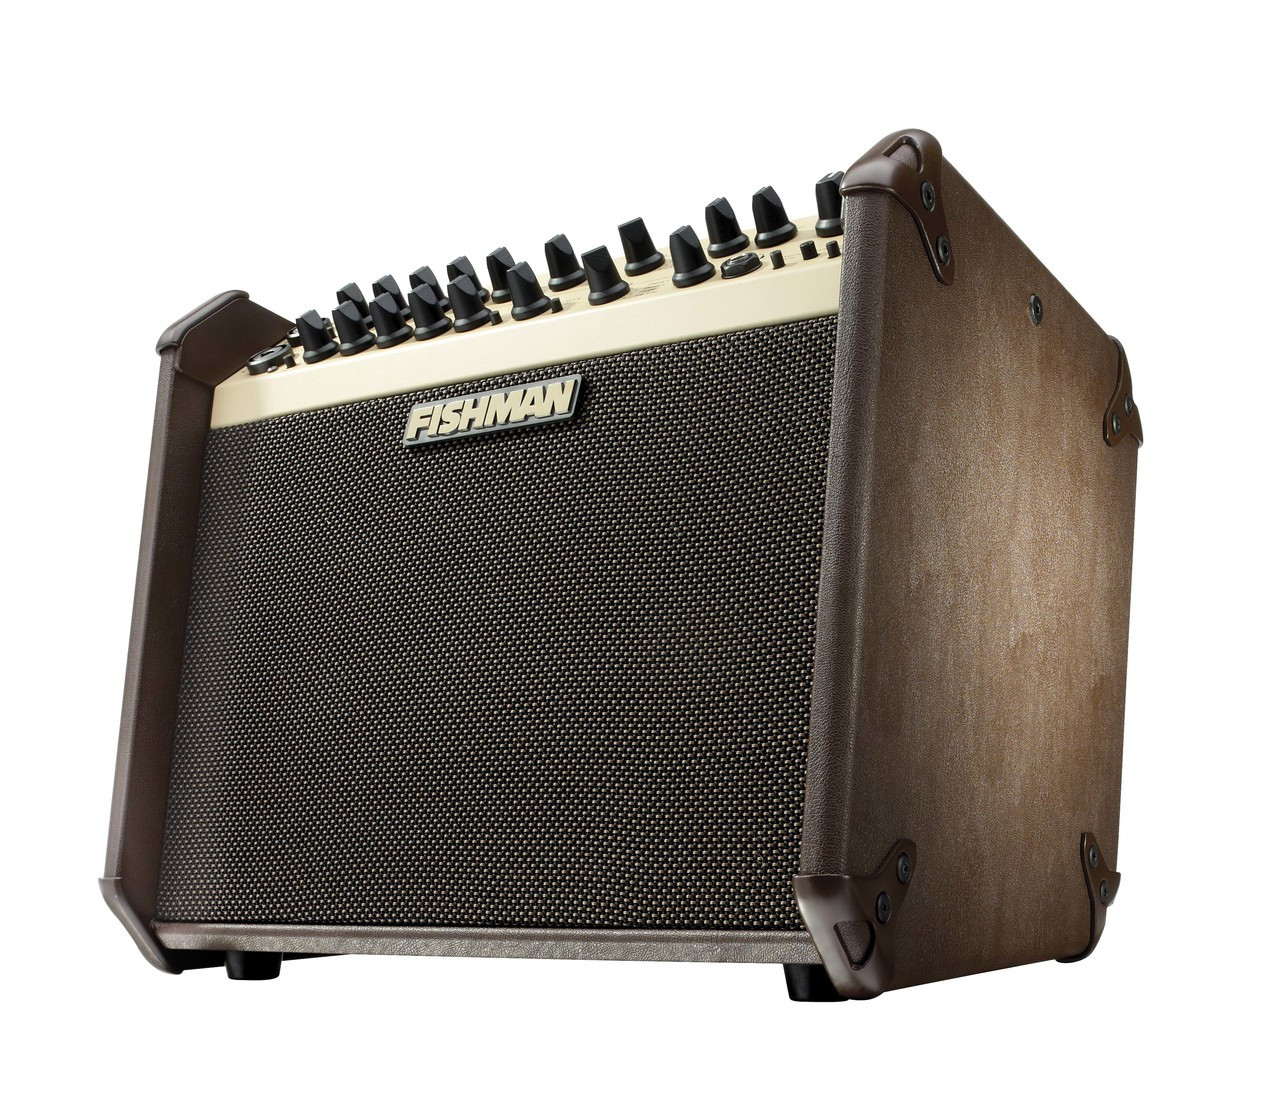 Fishman Loudbox Artist 120-watt Acoustic Guitar Amplifier - XLR DI Output - View 6